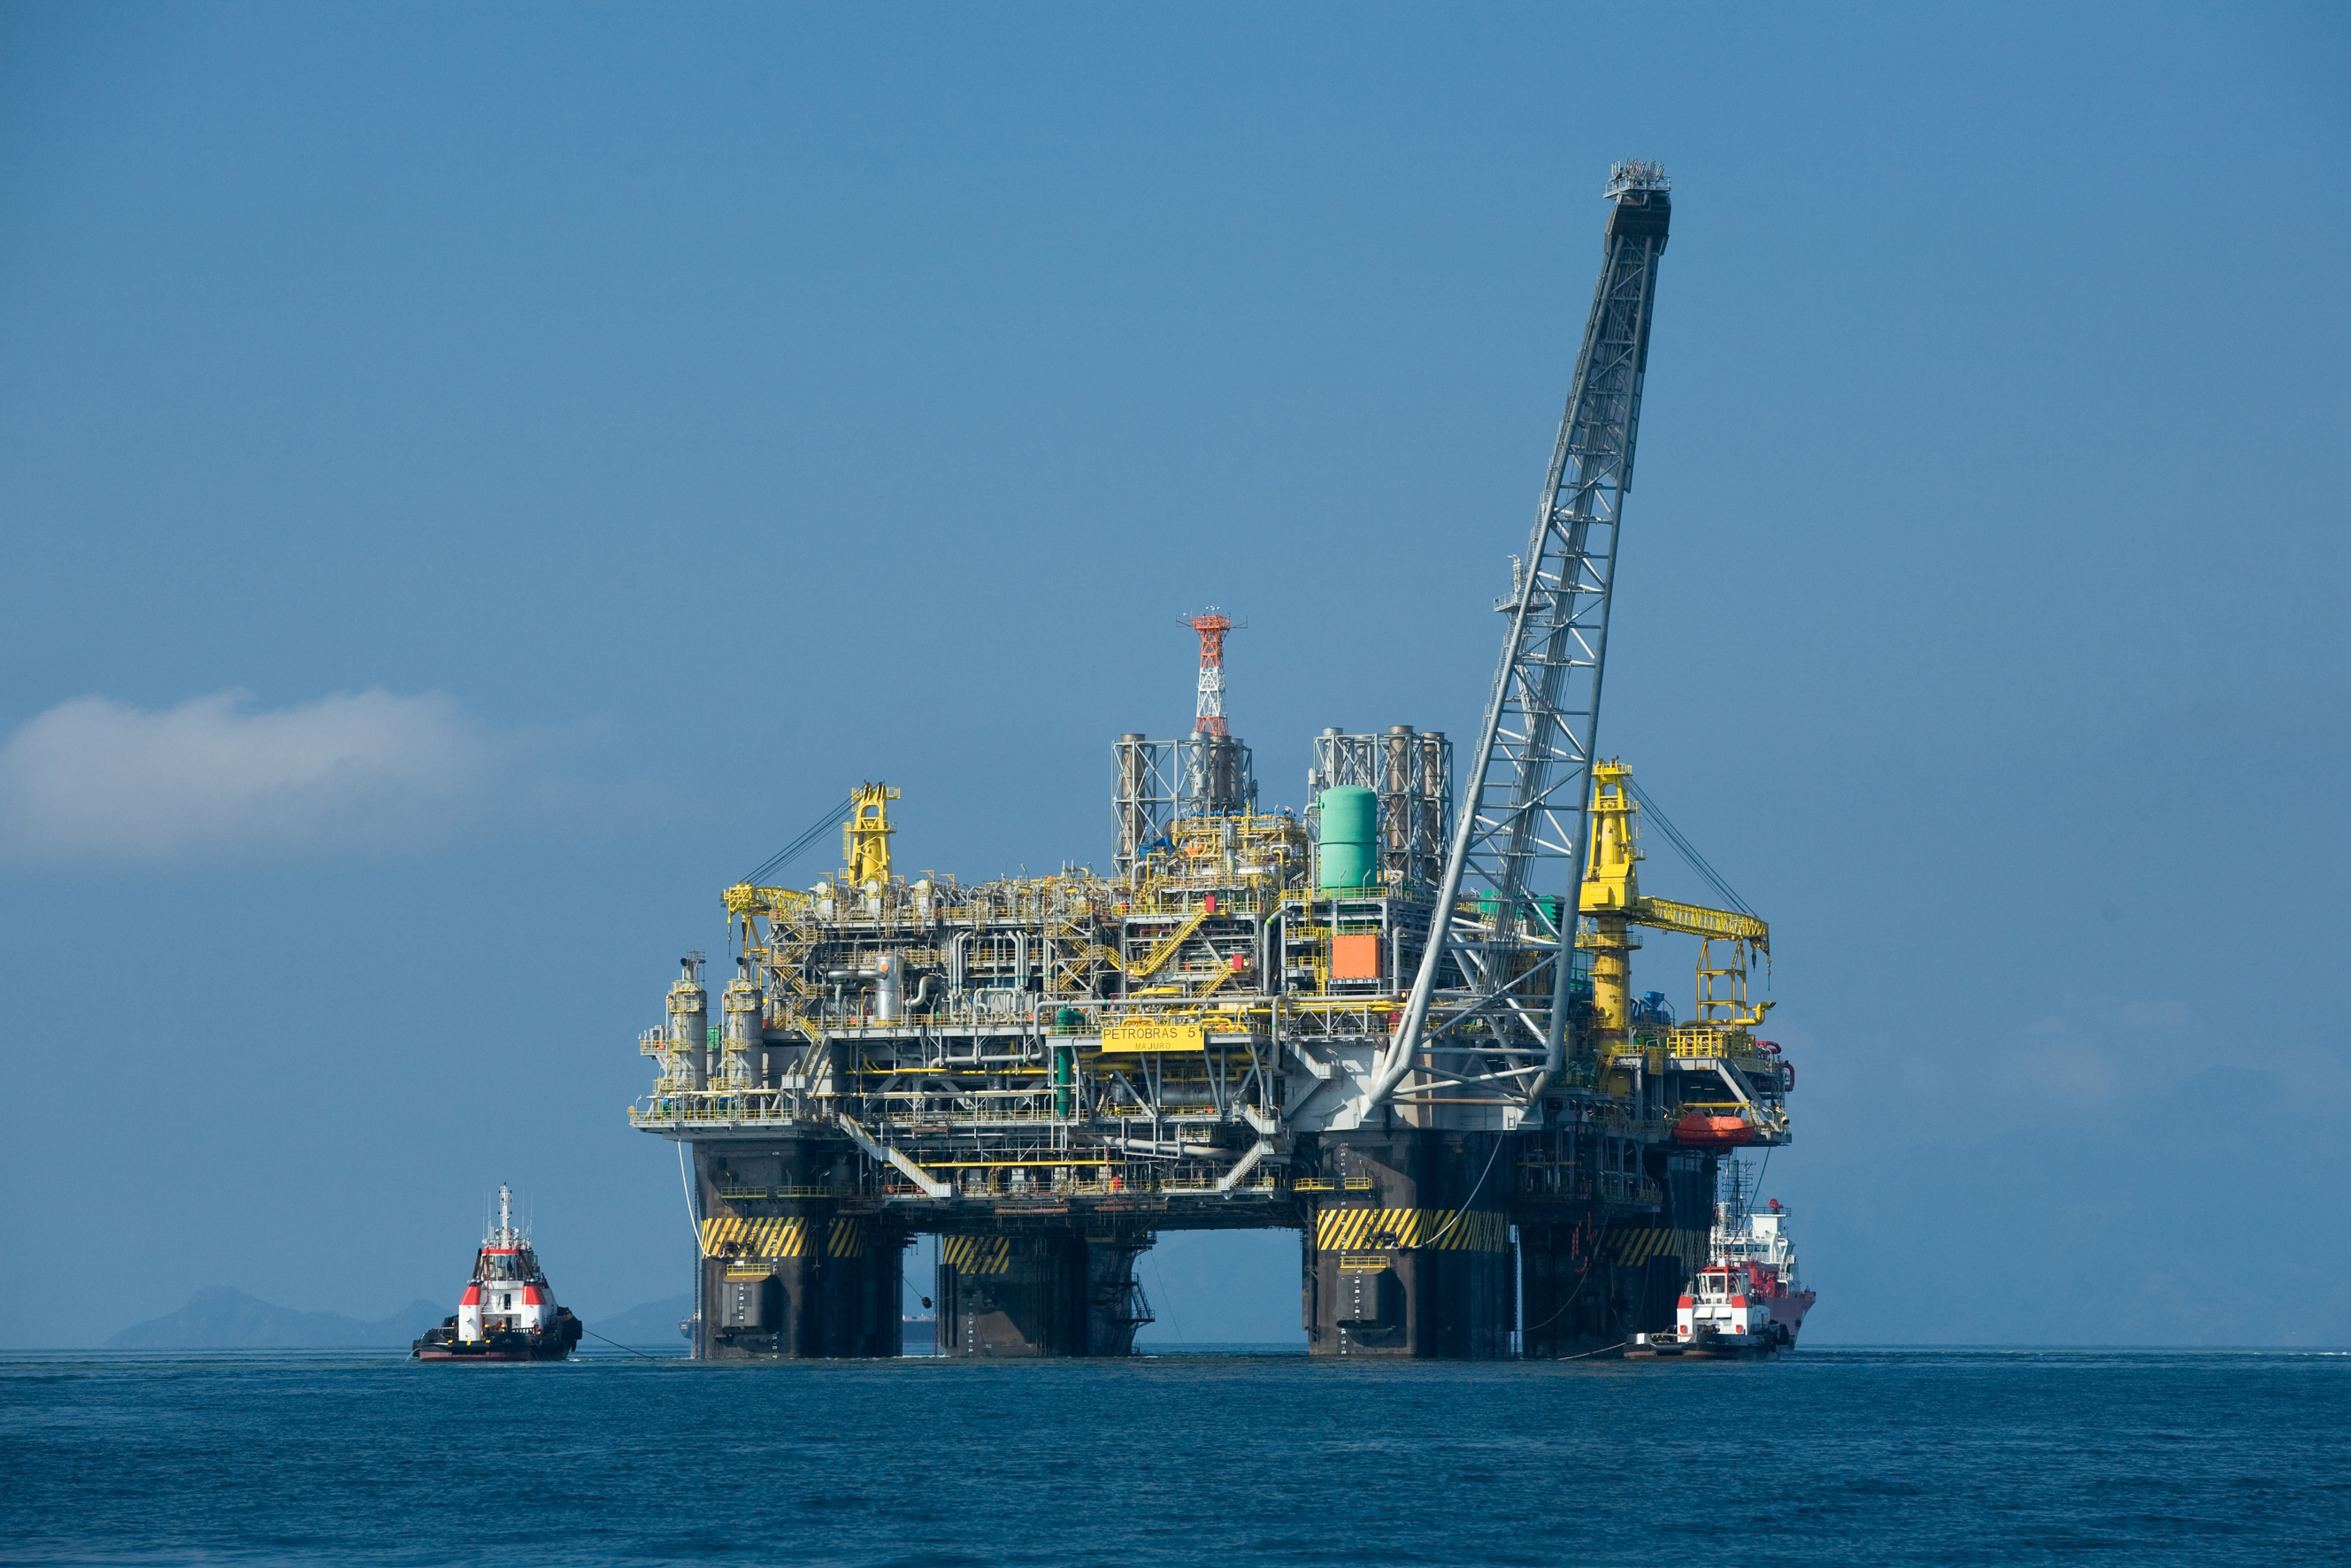 Offshore Oil Rig : Oil rig jobs for beginners tips getting an entry